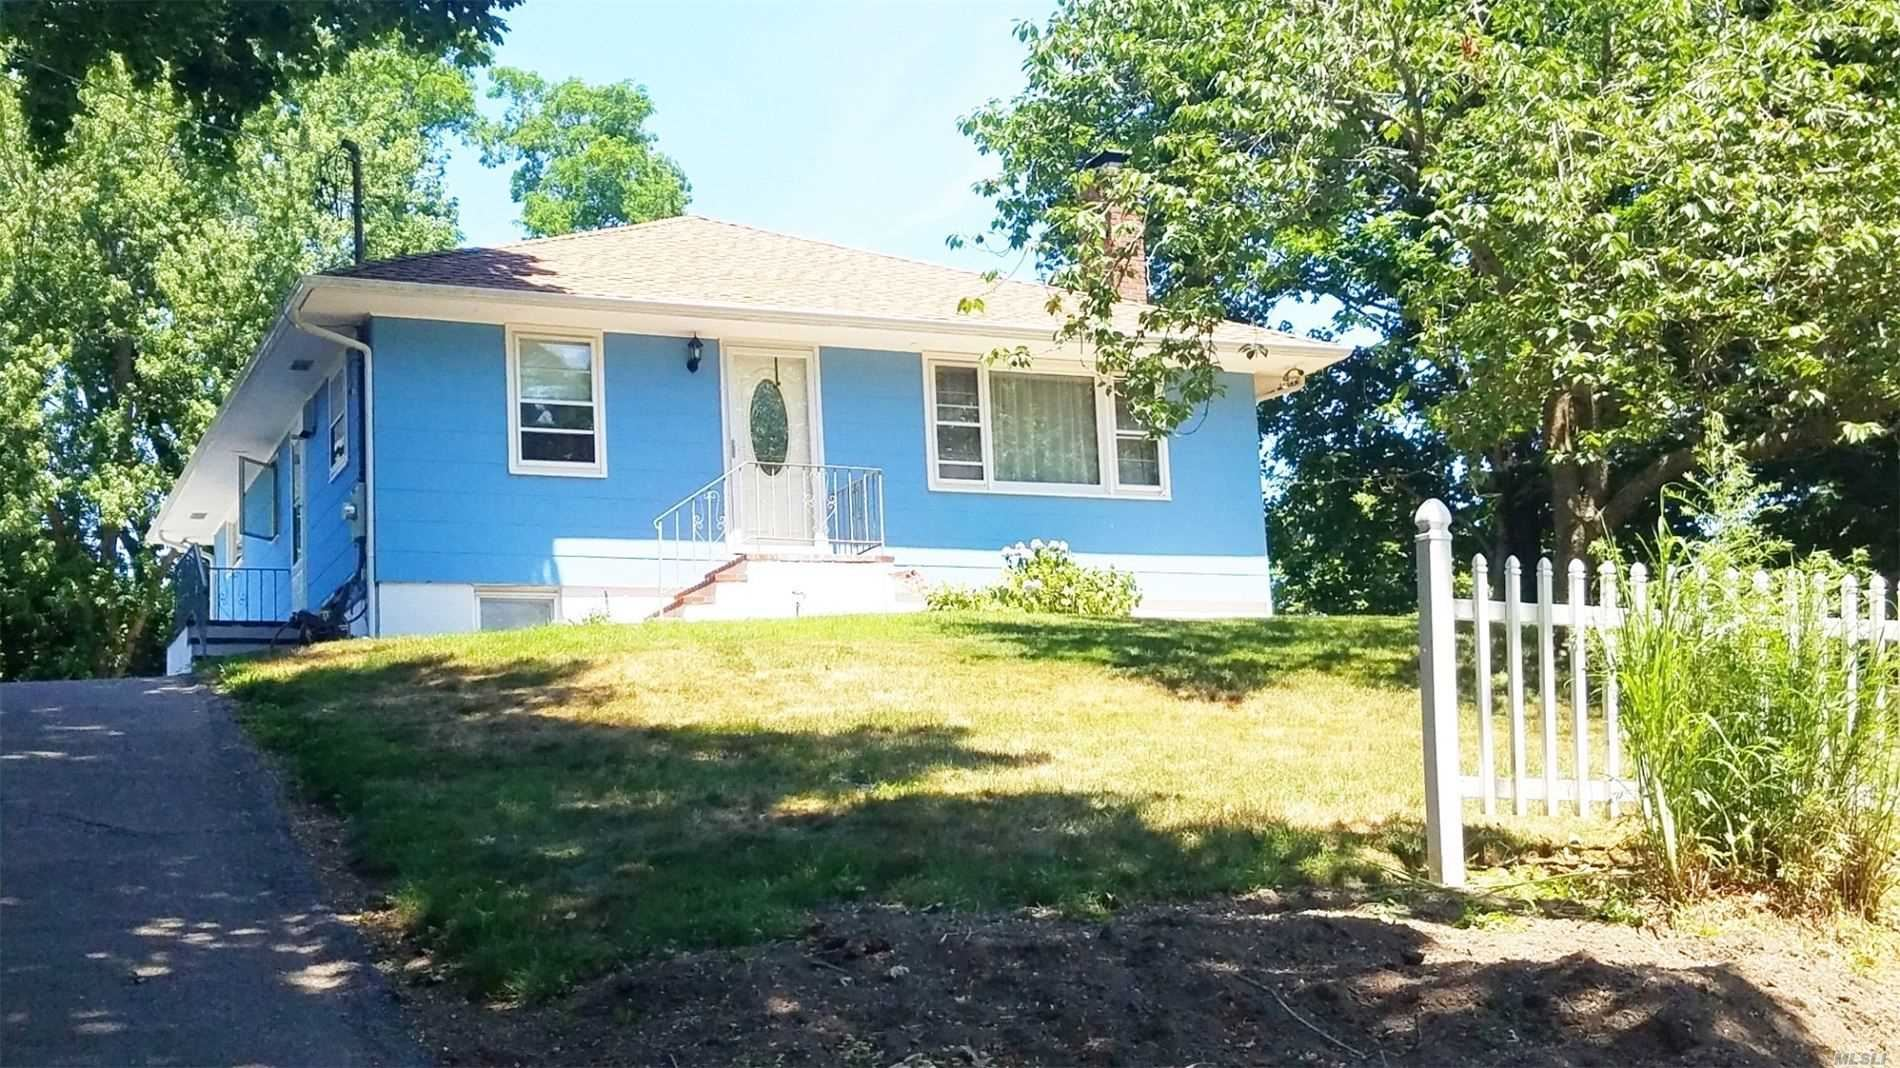 33 Sams Path, Rocky Point, NY 11778 - MLS#: 3233596